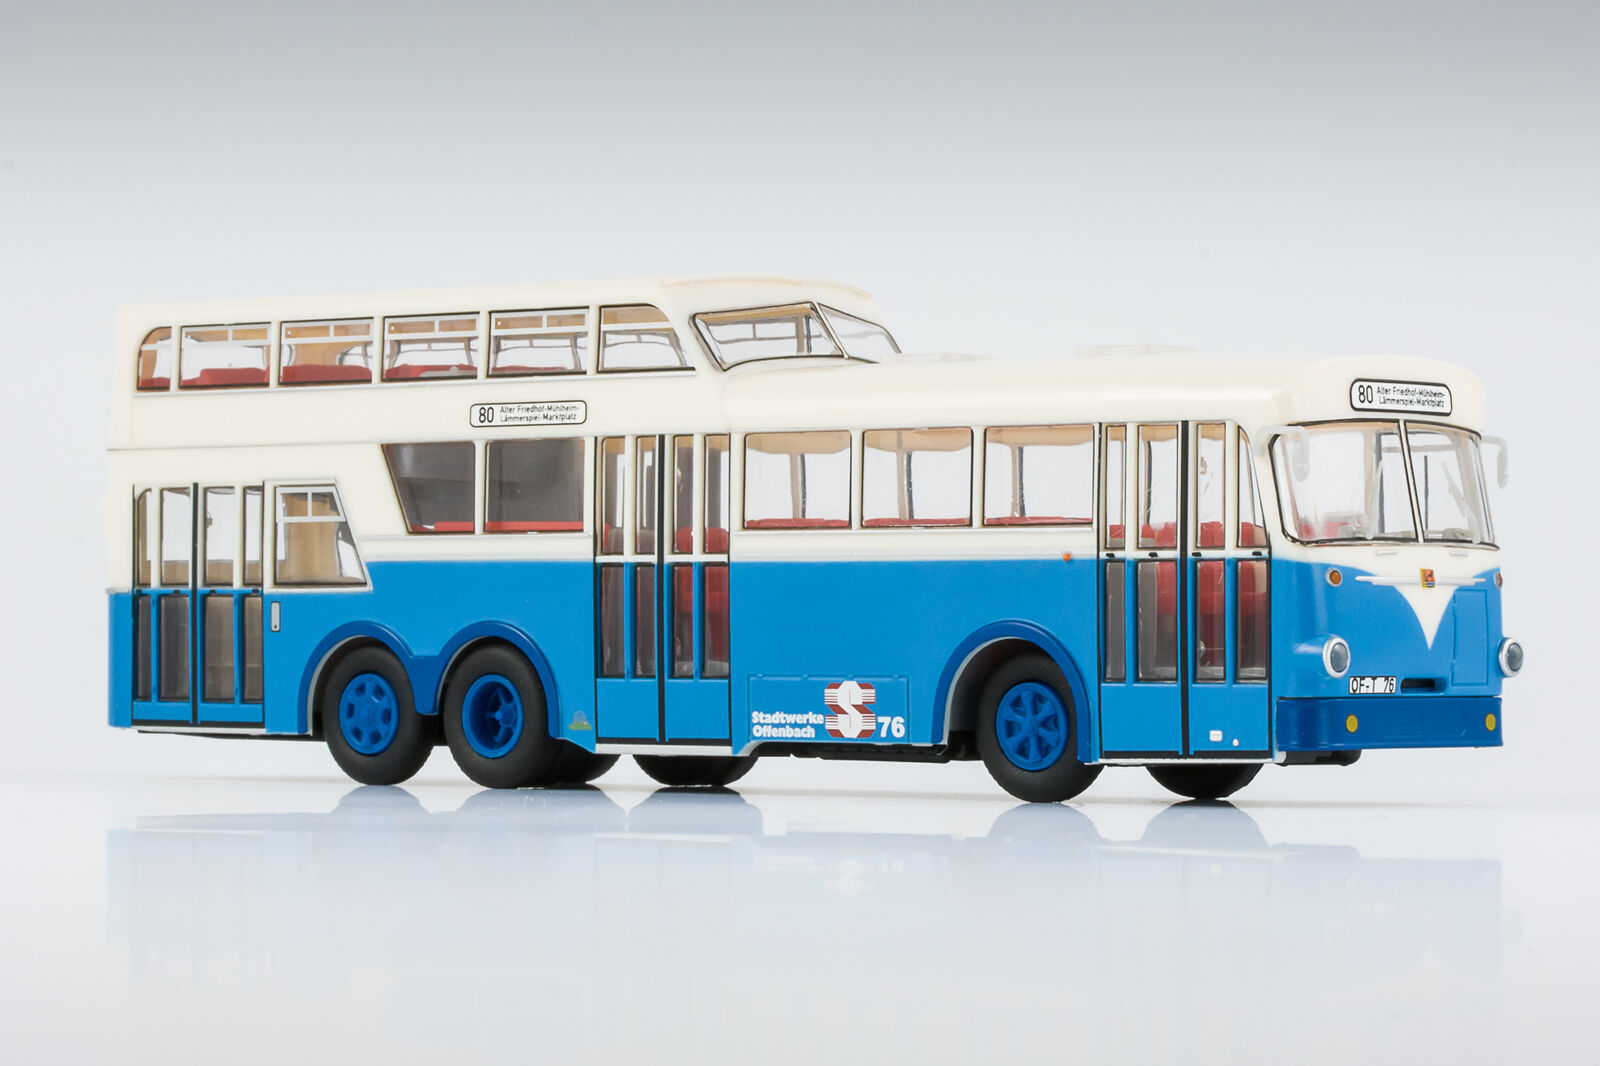 VK-Modelle HO scale Busing-Ludewig bus of OVB Offenbach